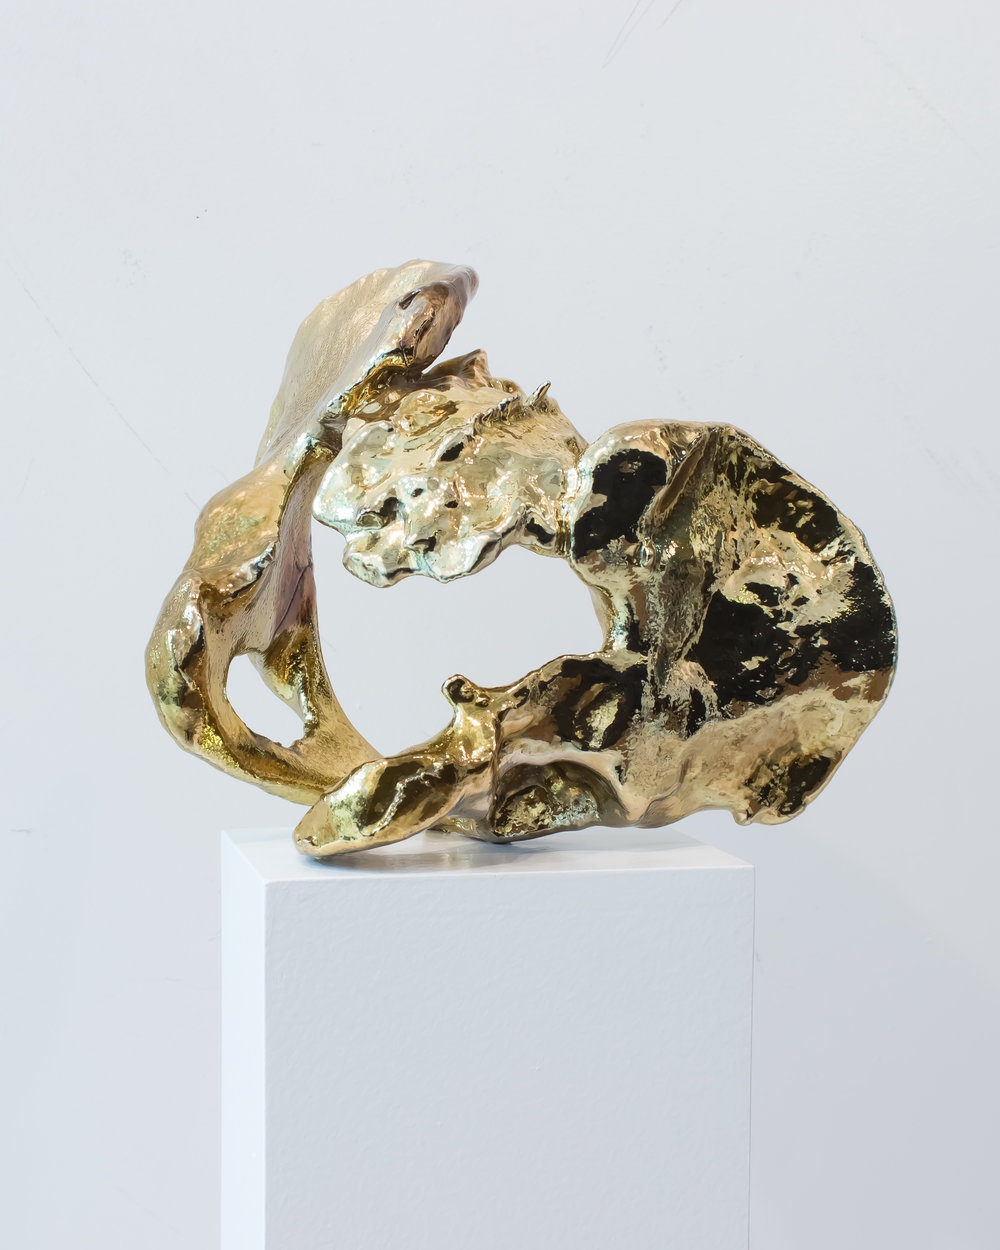 Carol Peligian,  Lucifer II,  2019, 18k gold, 10 x 8 x 8 inches